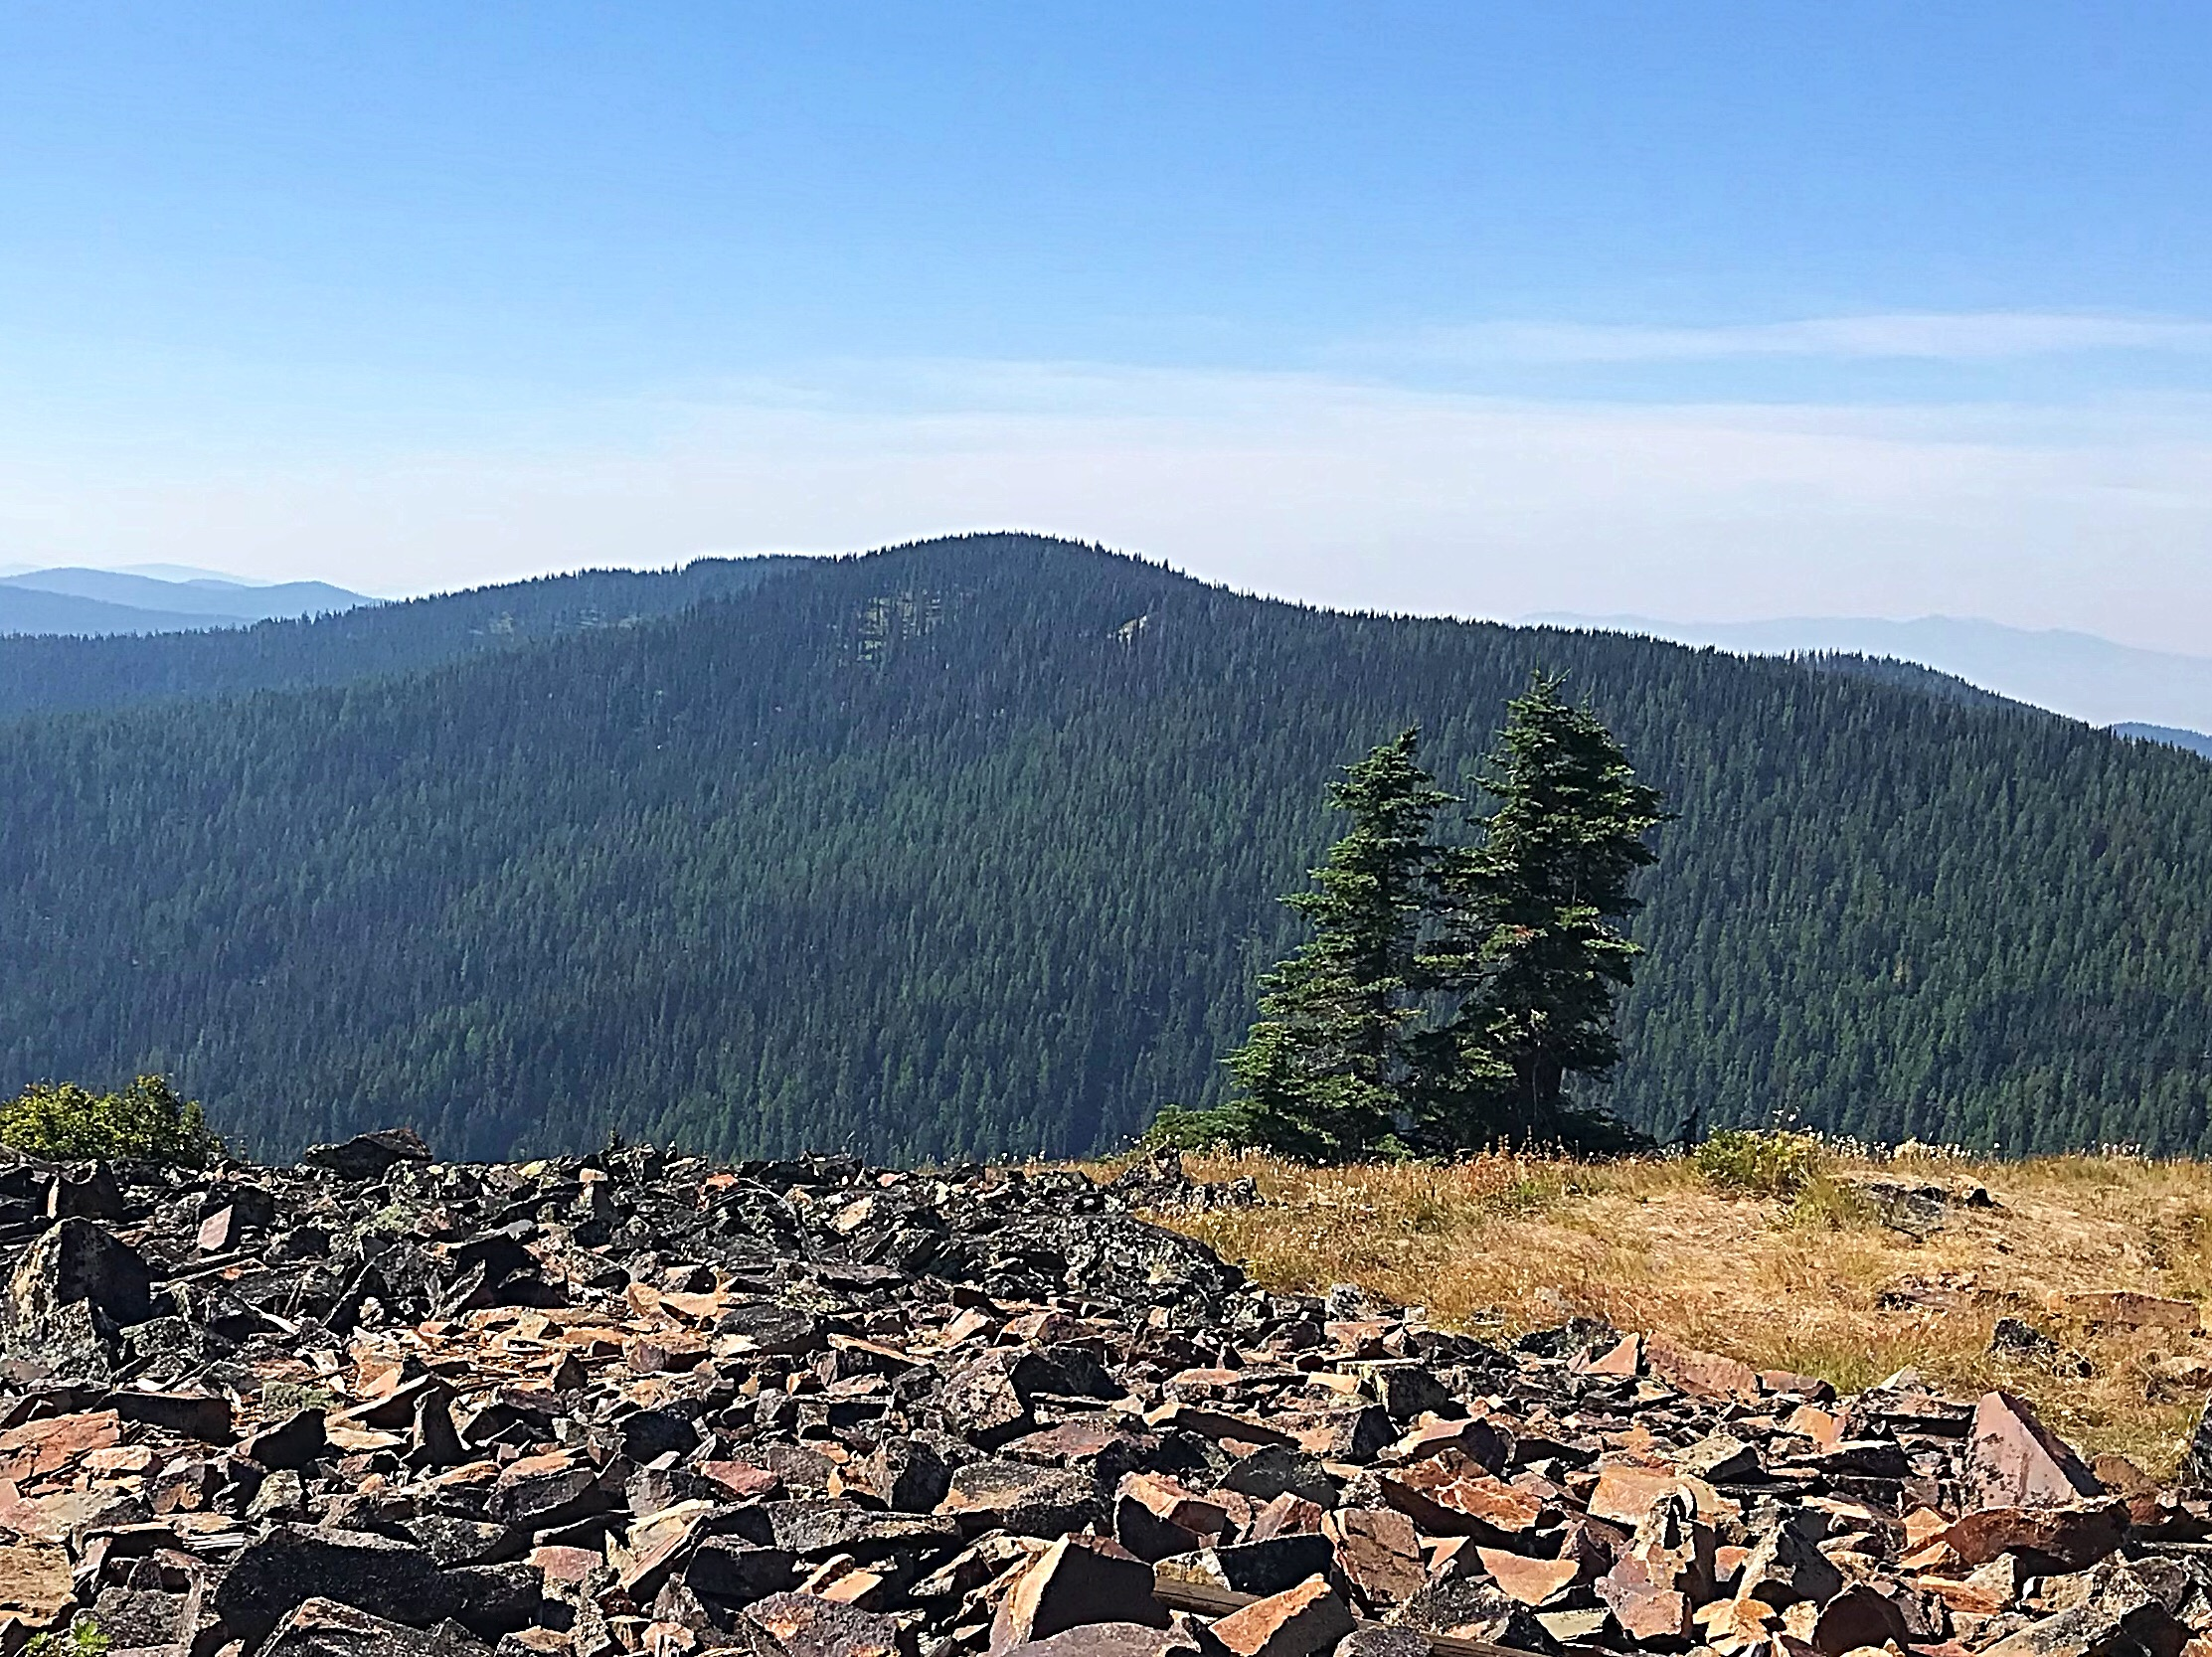 South Chilco Mountain viewed from North Chilco Mountain. Tom Lopez Photo